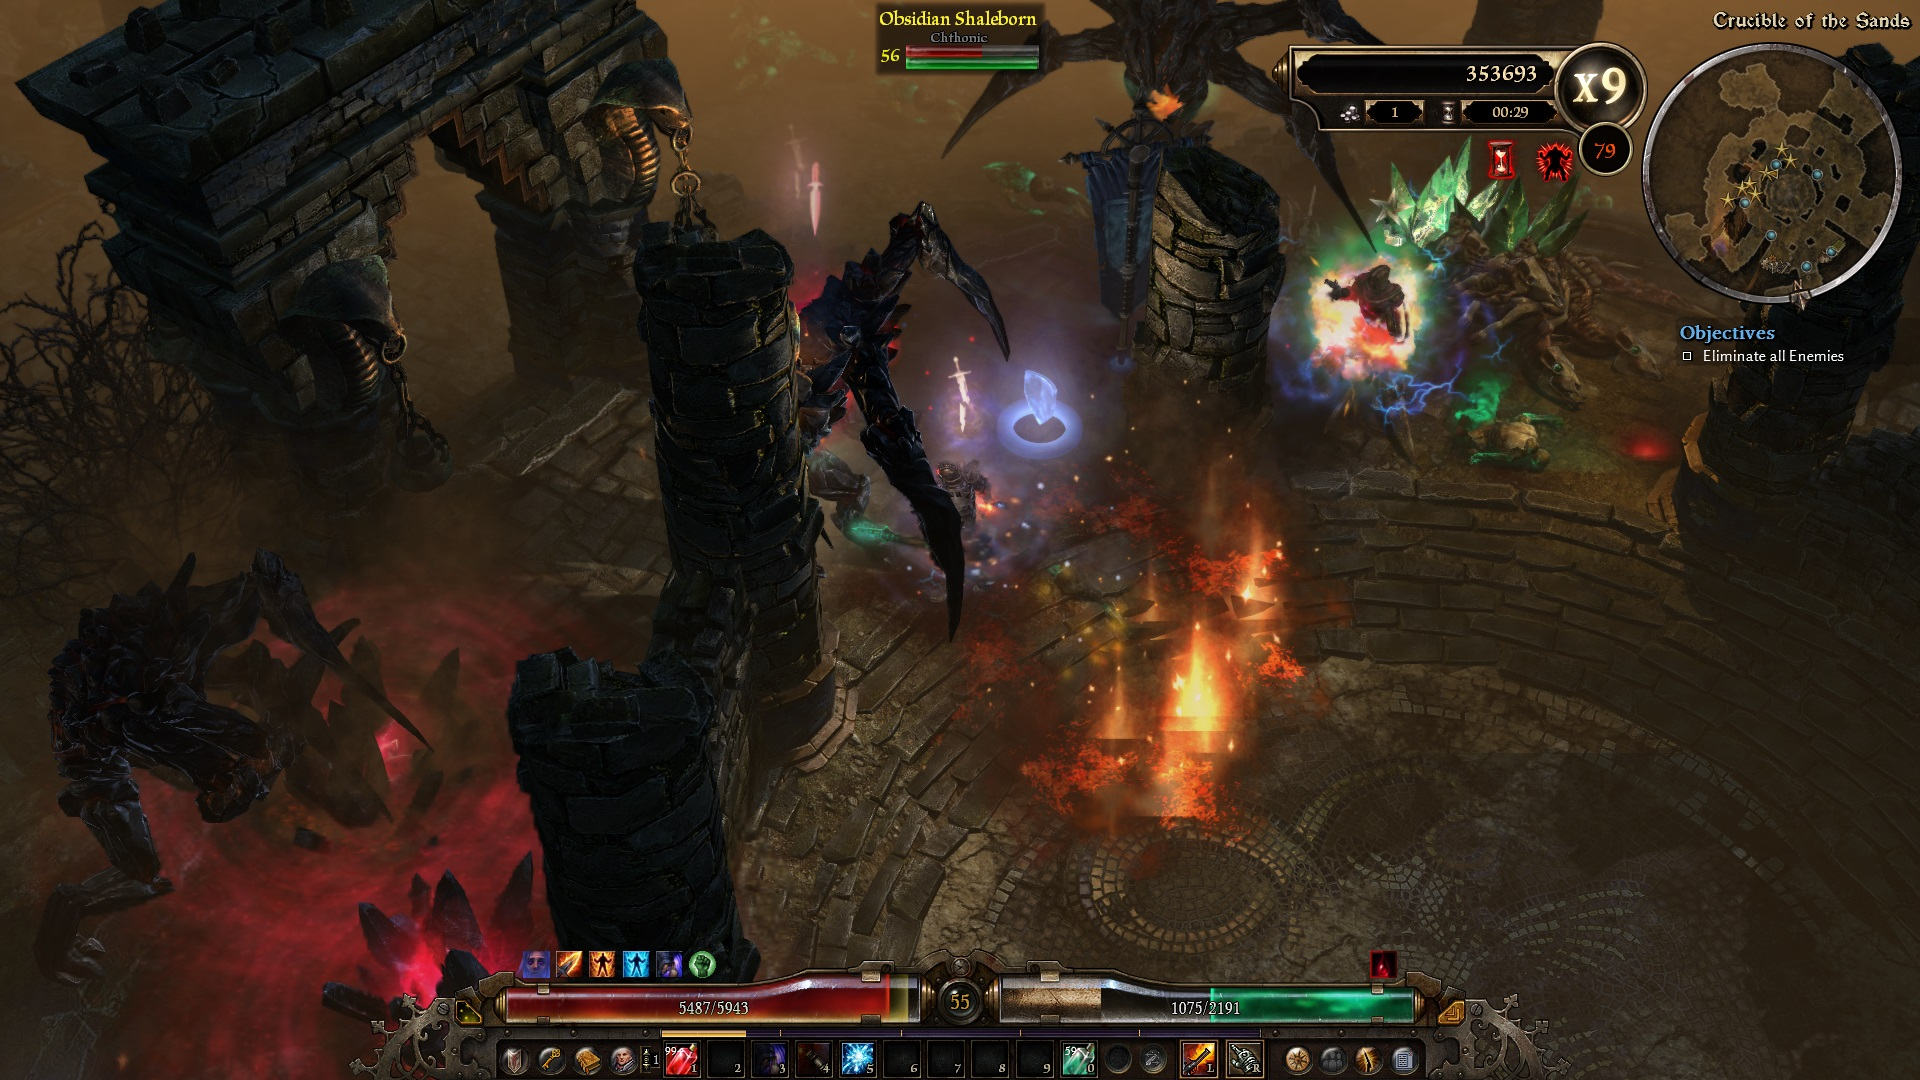 Grim Dawn Crucible Setup Free Download